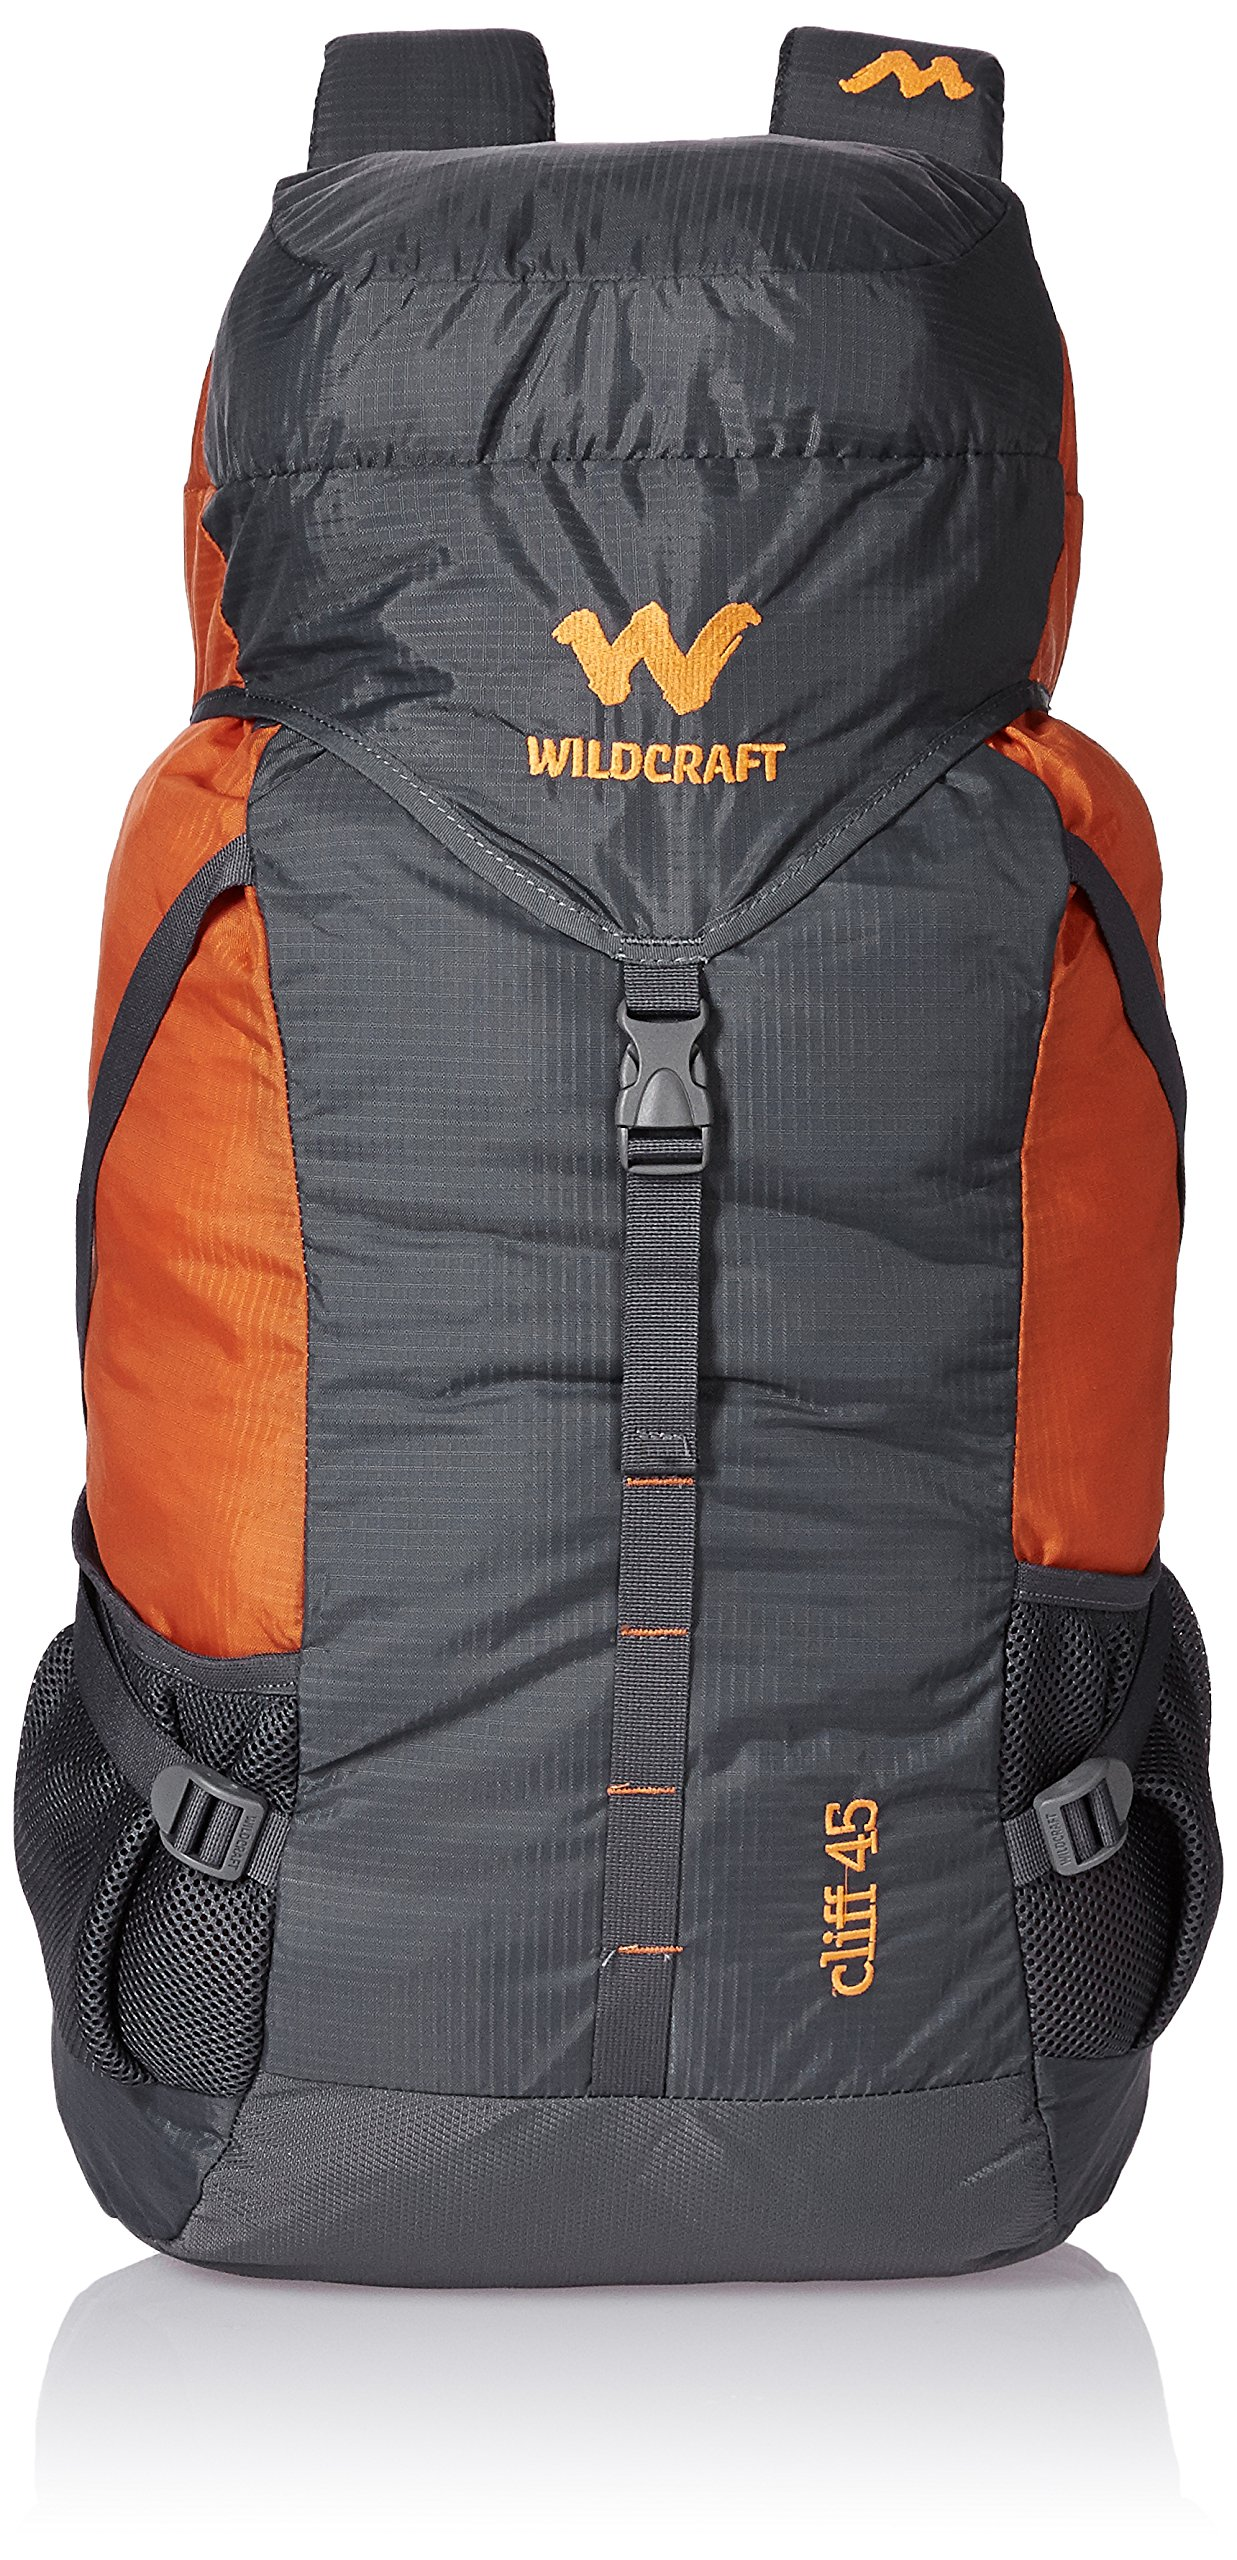 Wildcraft 45 Ltrs Grey and Orange Rucksack (8903338073864) product image